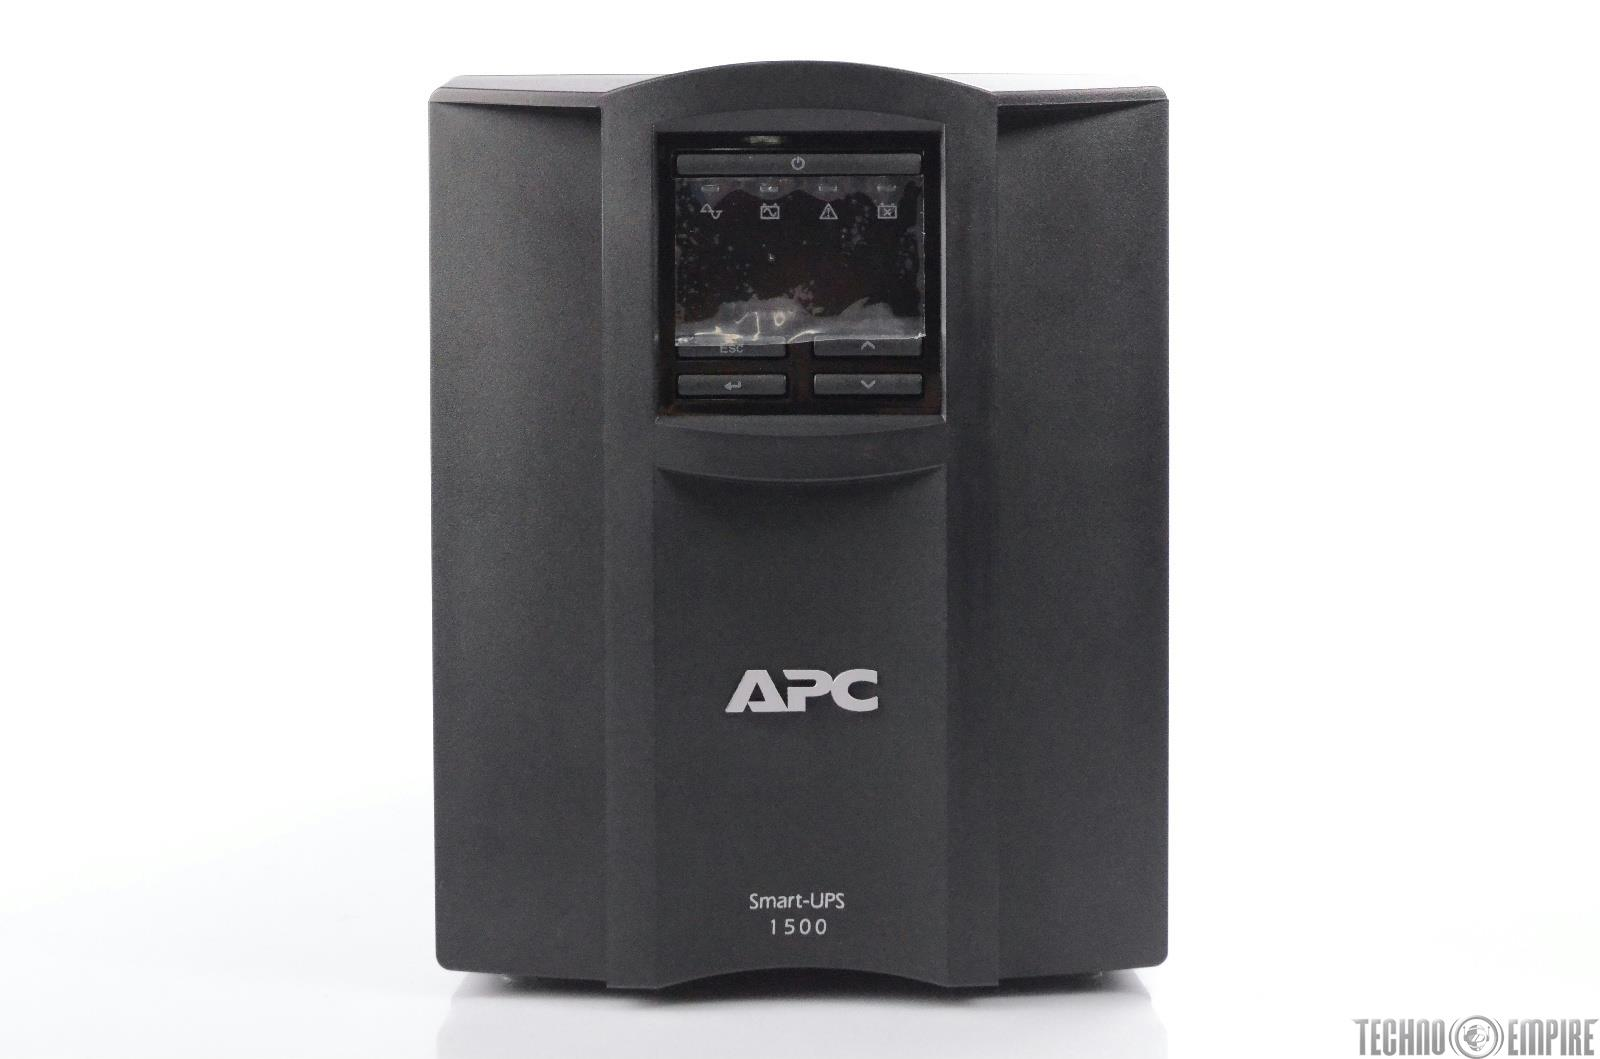 APC Smart-UPS 1500 Backup Battery Power Supply w/ Packaging & Accessories #31059